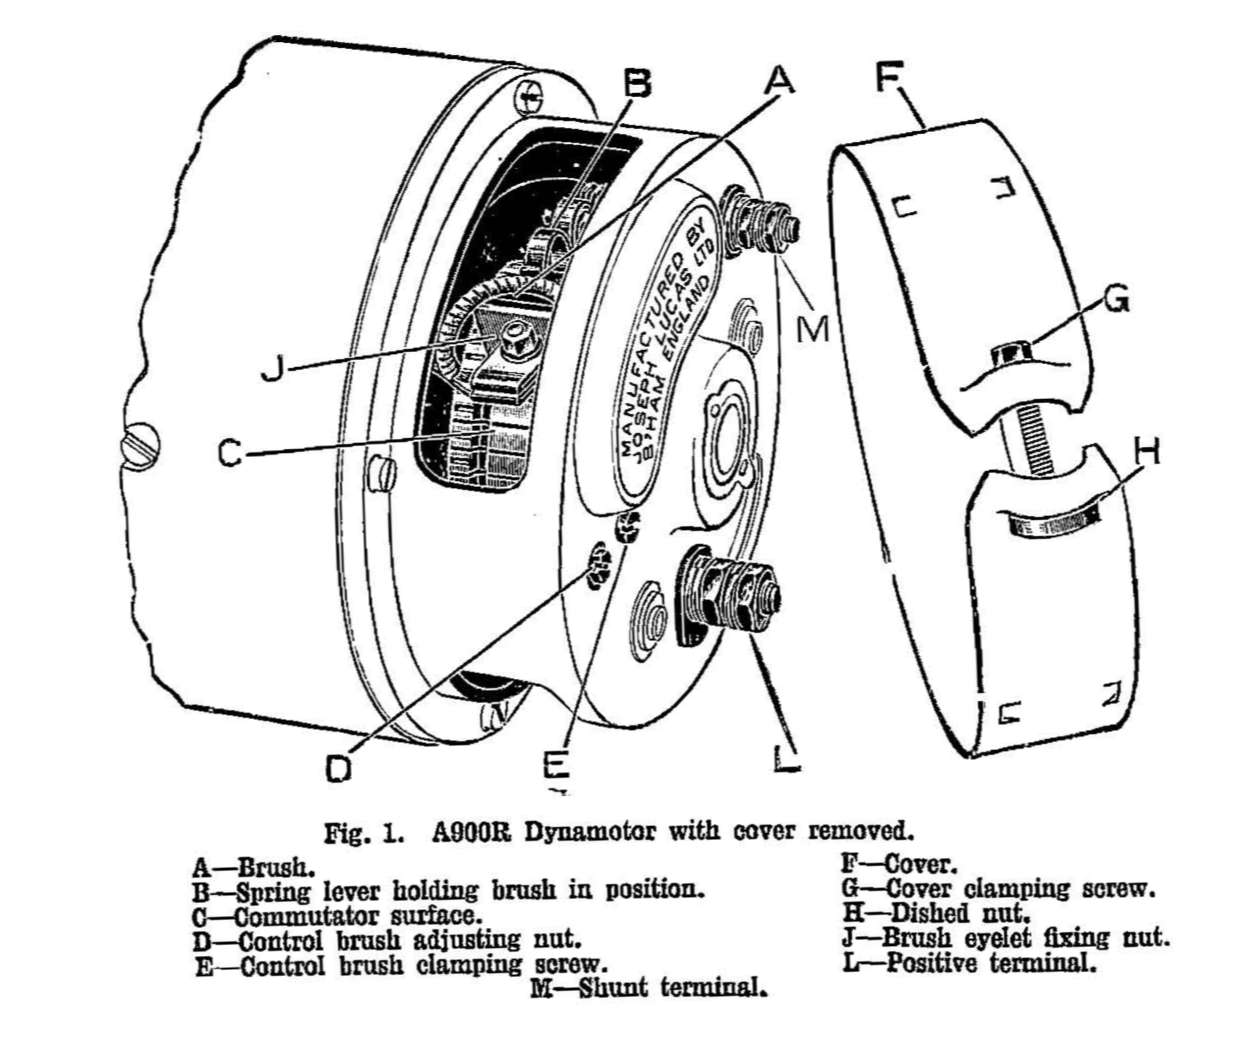 hight resolution of as fitted in 1932 the lucas dynamotor was wired as in the wiring diagram below note that the layout of the brushes shown in this diagram is viewed